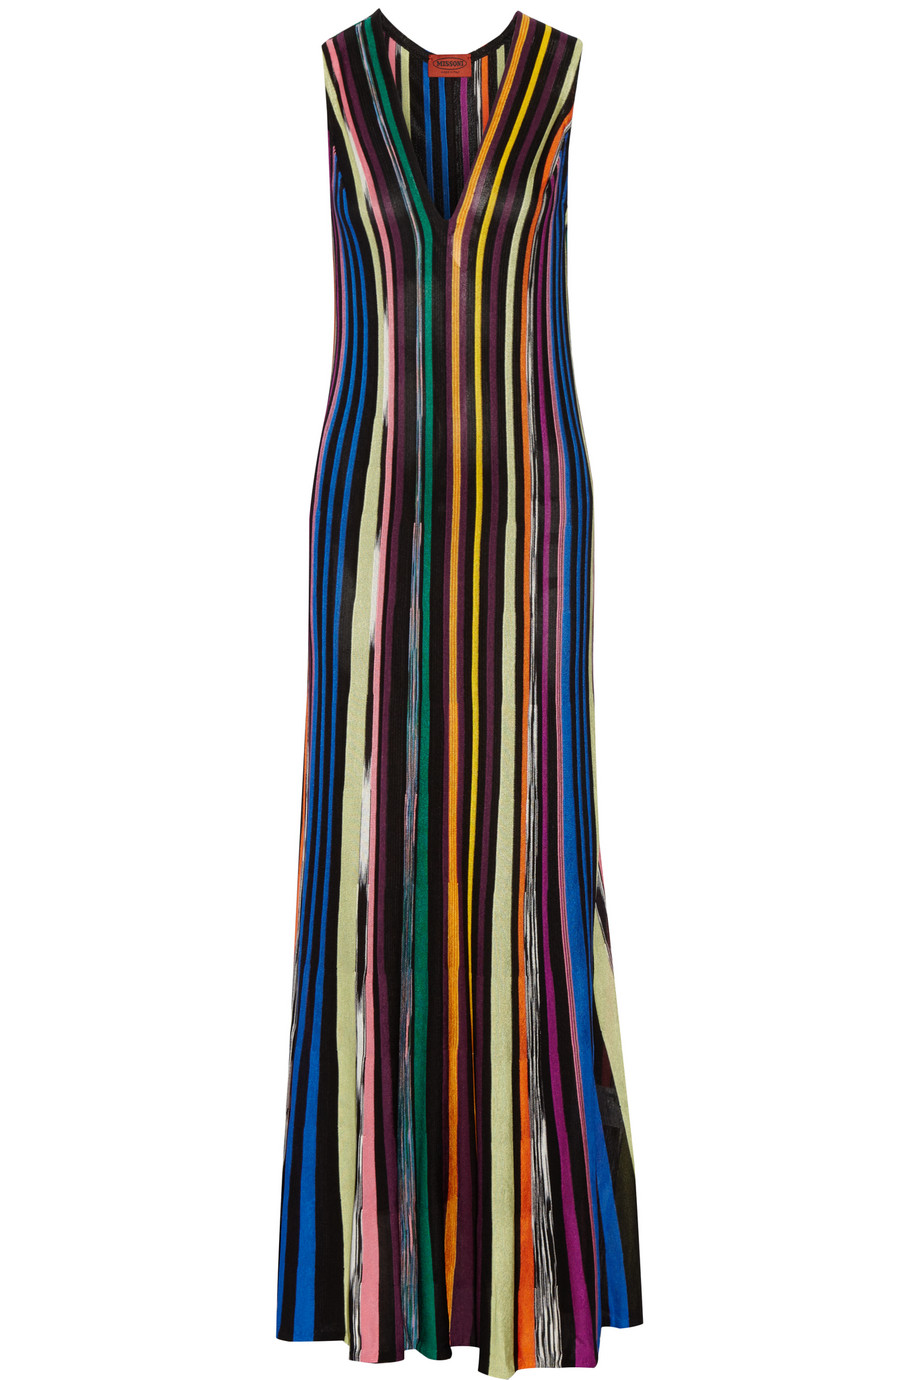 Missoni Striped Crochet-Knit Maxi Dress, Blue, Women's, Size: 36